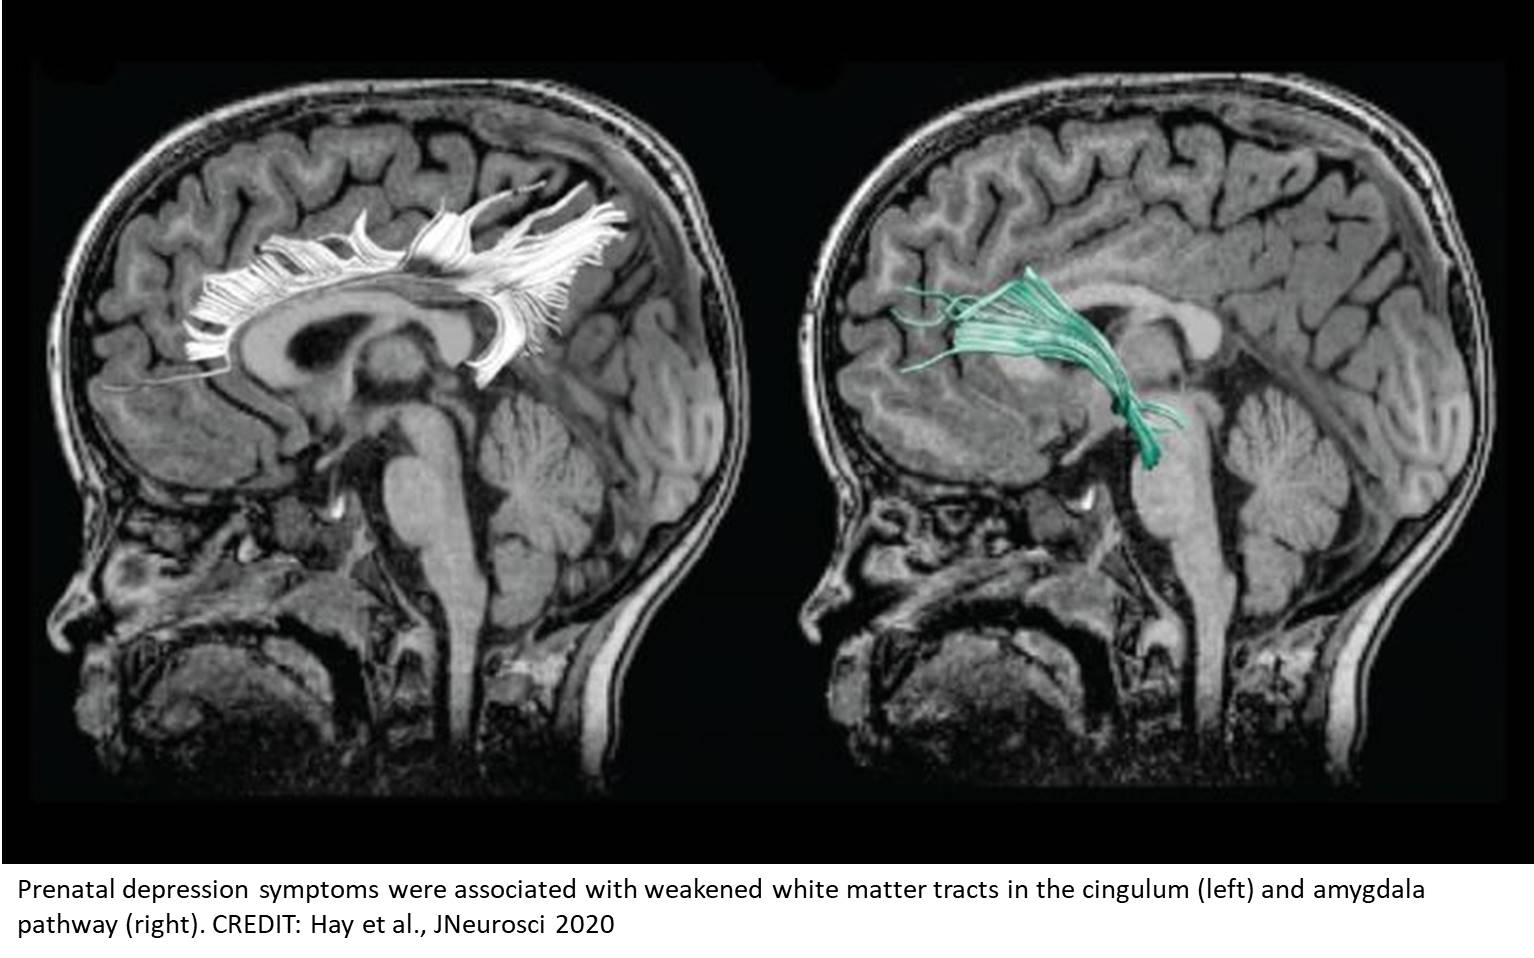 Childs white matter connectivity and behavior altered following prenatal depression